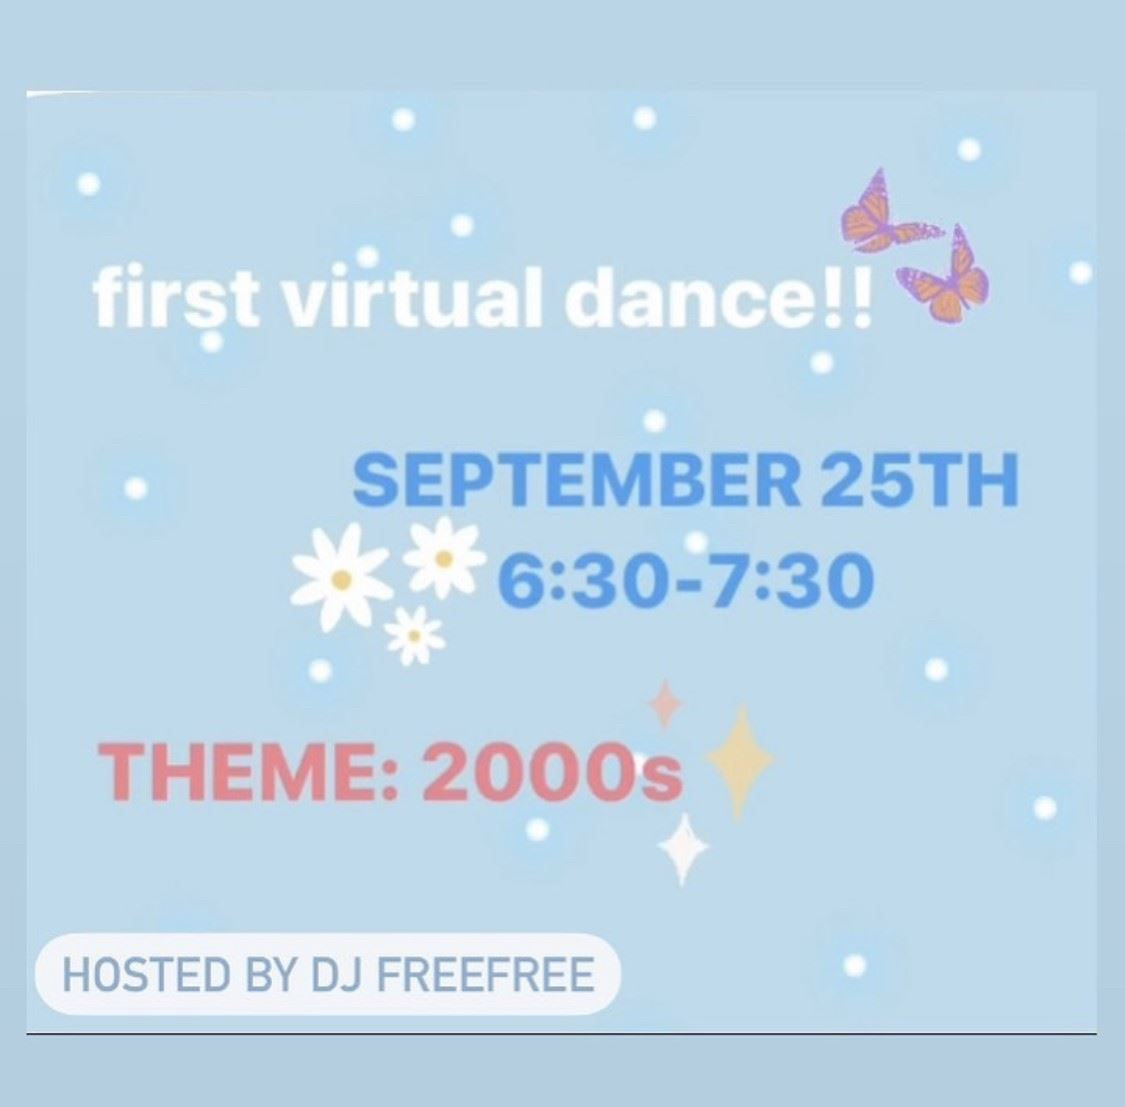 Virtual Dance Friday, September 25th at 6:30PM